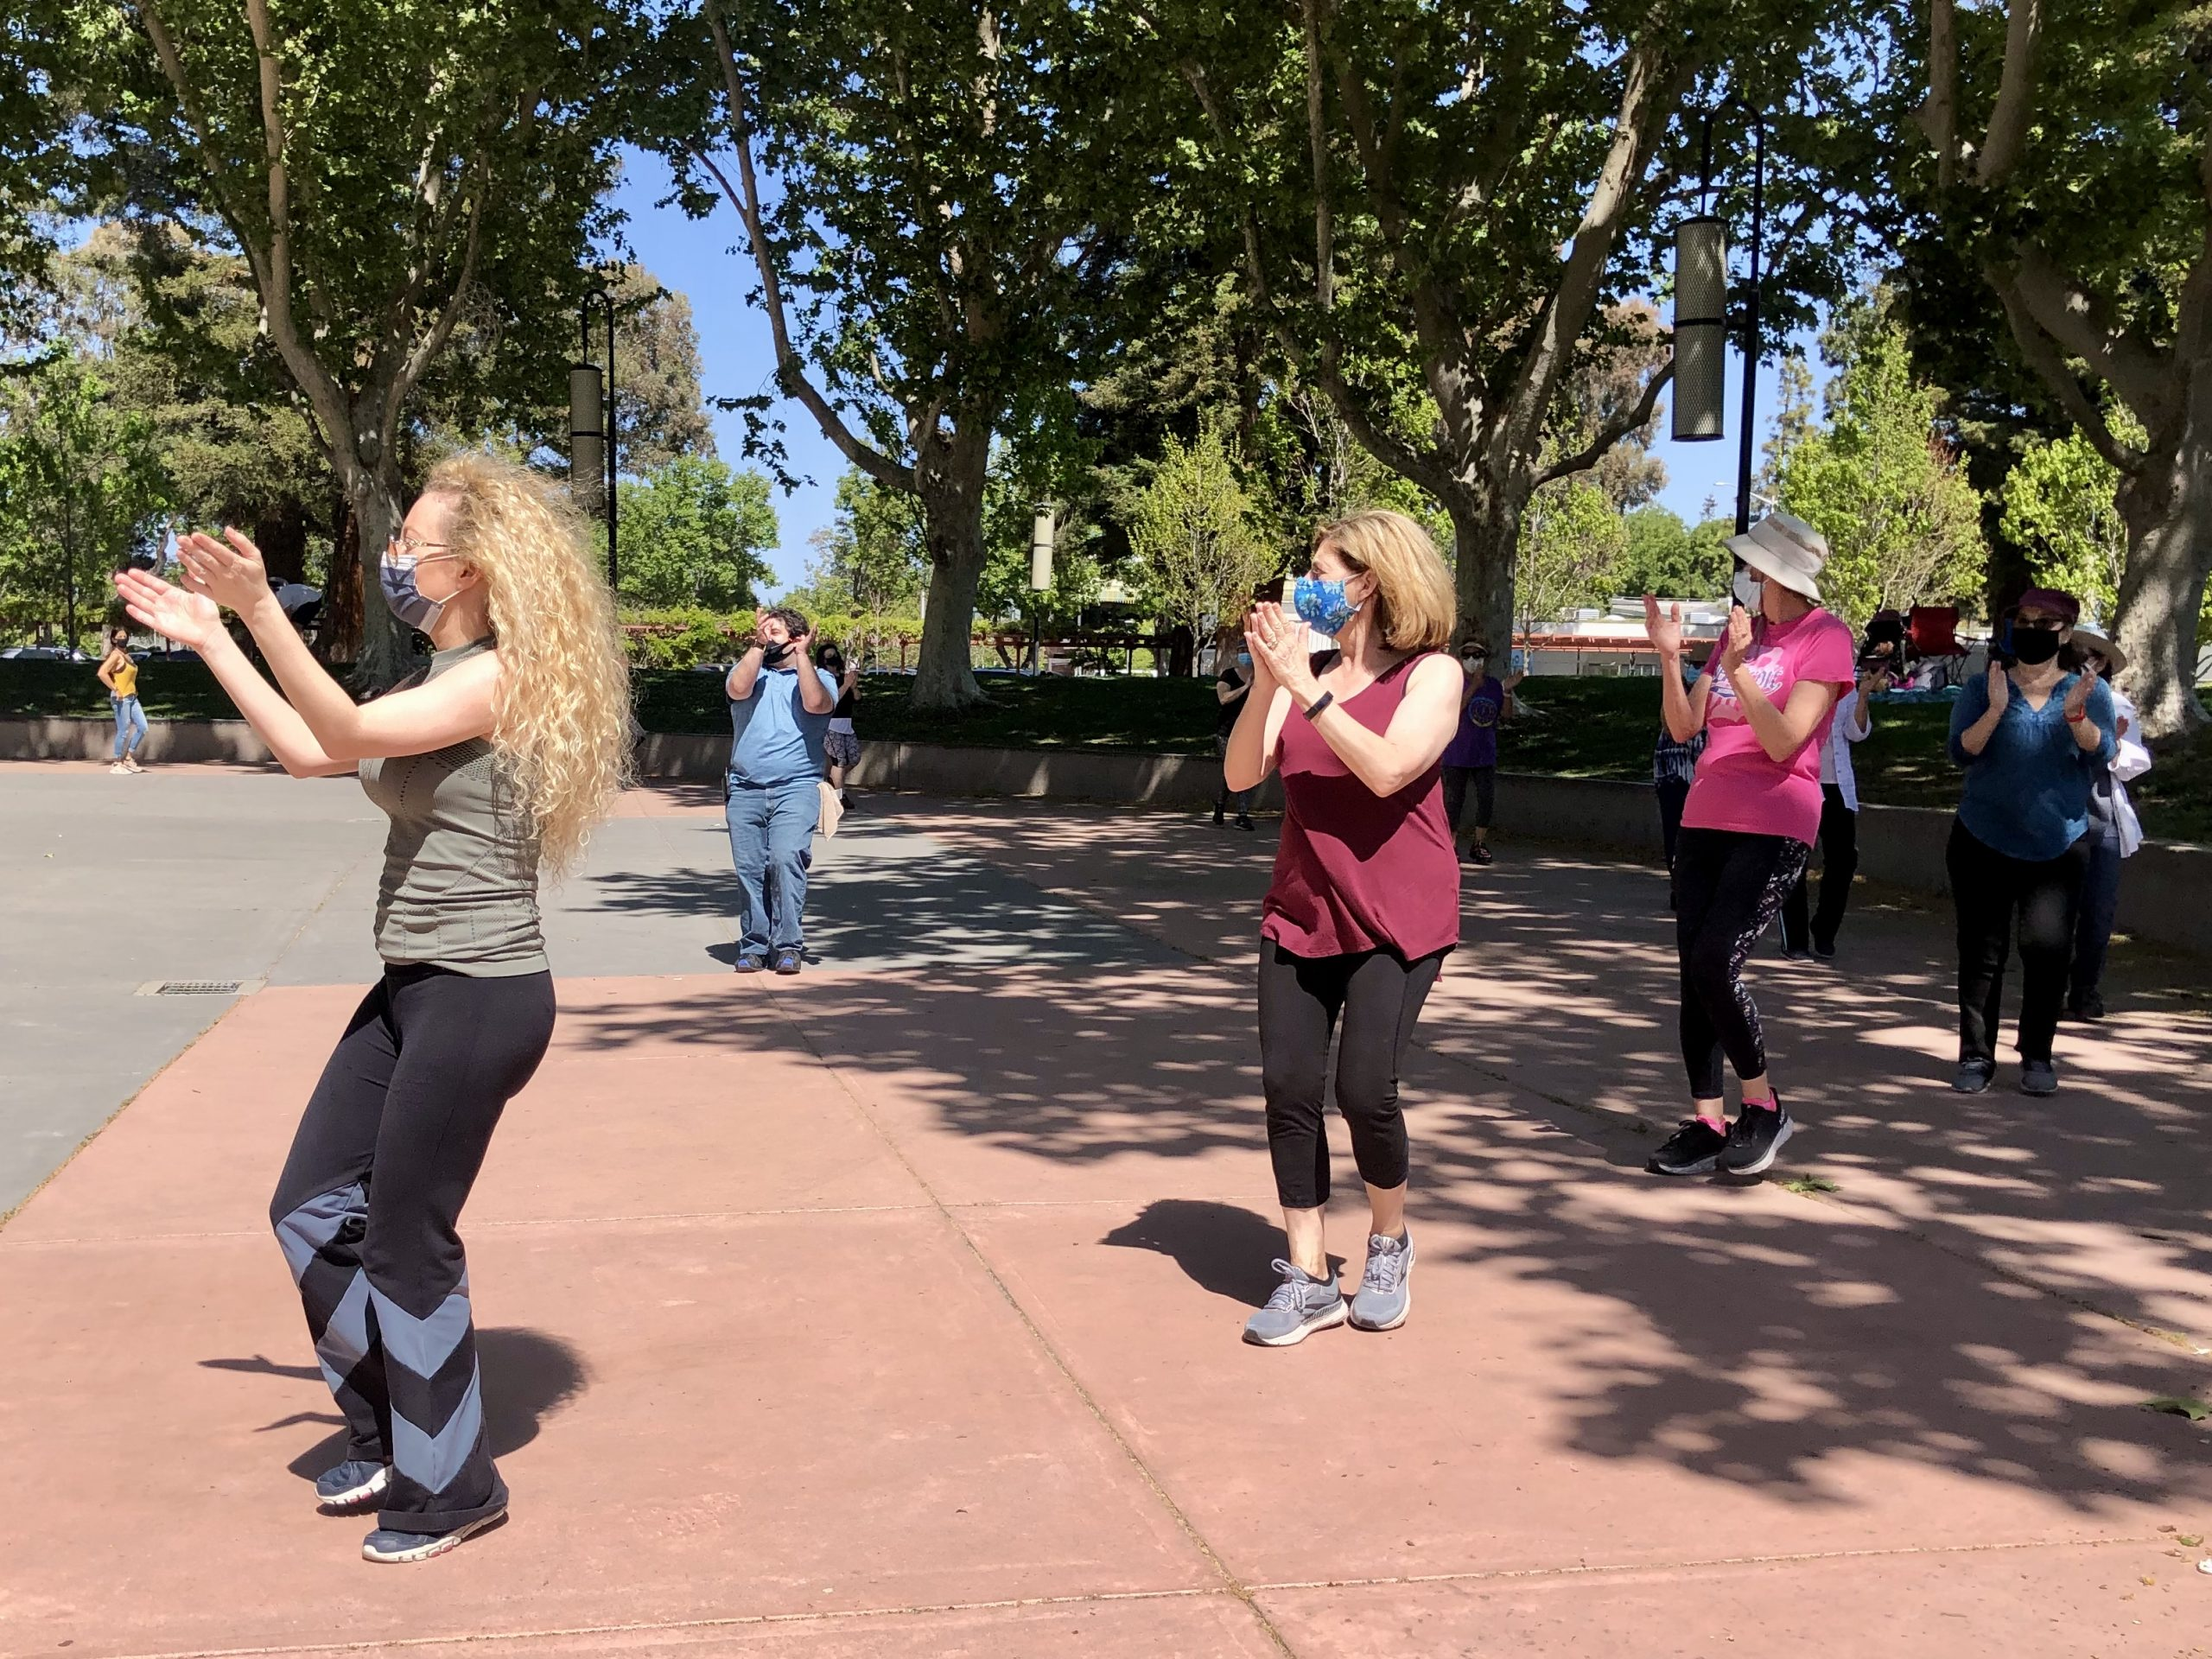 Aaron Alpert, in blue, leading an Israeli dance session at Palo Alto's Mitchell Park earlier this month. (Photo/Andrew Esensten)